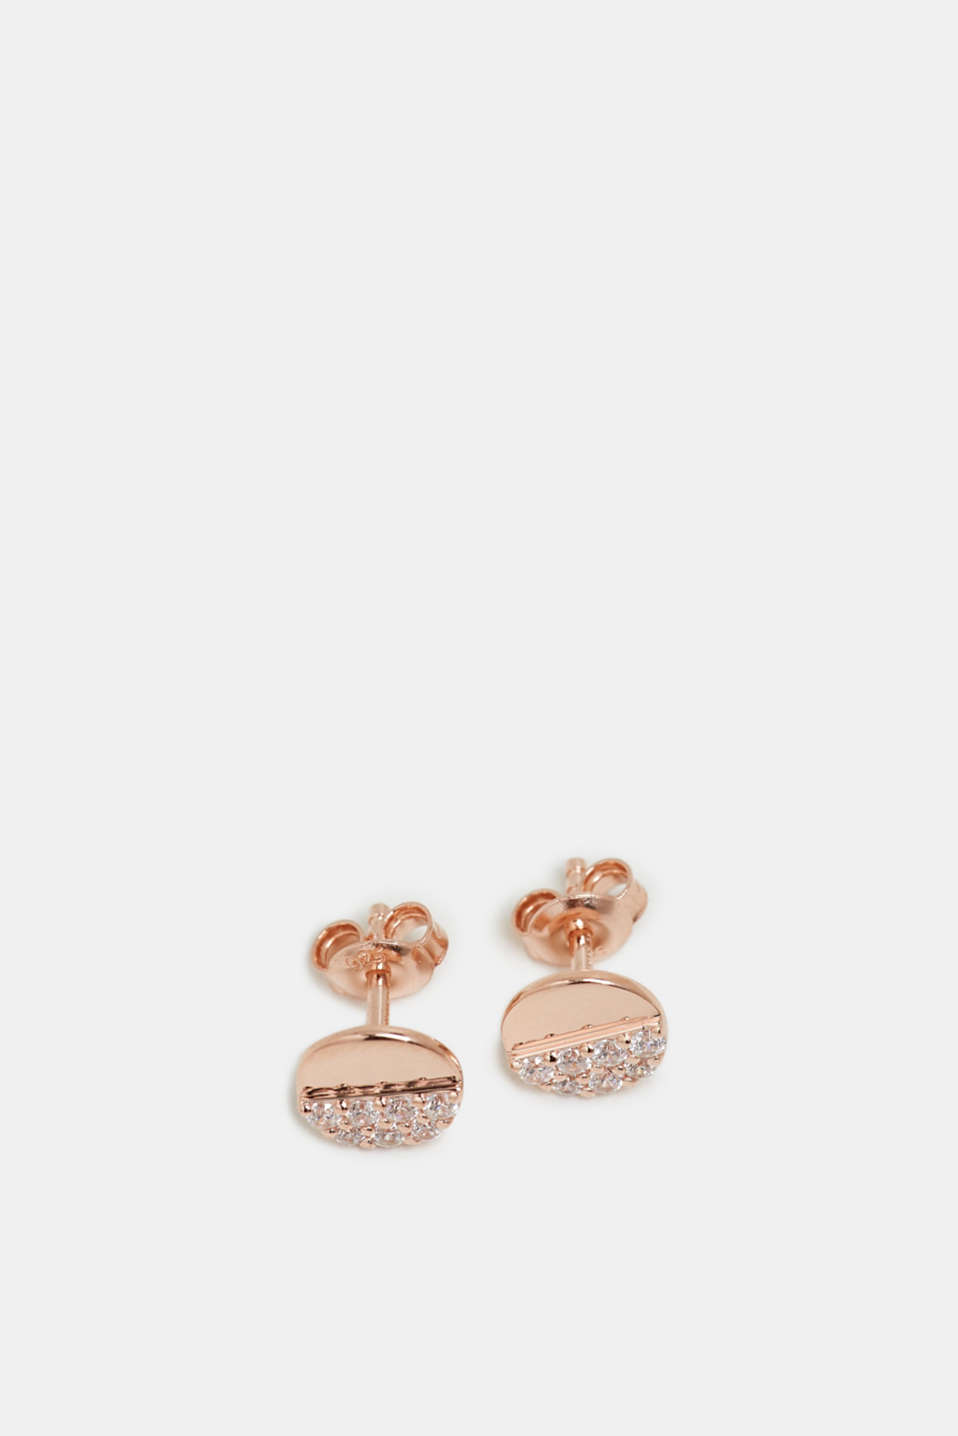 Stud earrings with a zirconia trim in sterling silver, ROSEGOLD, detail image number 1